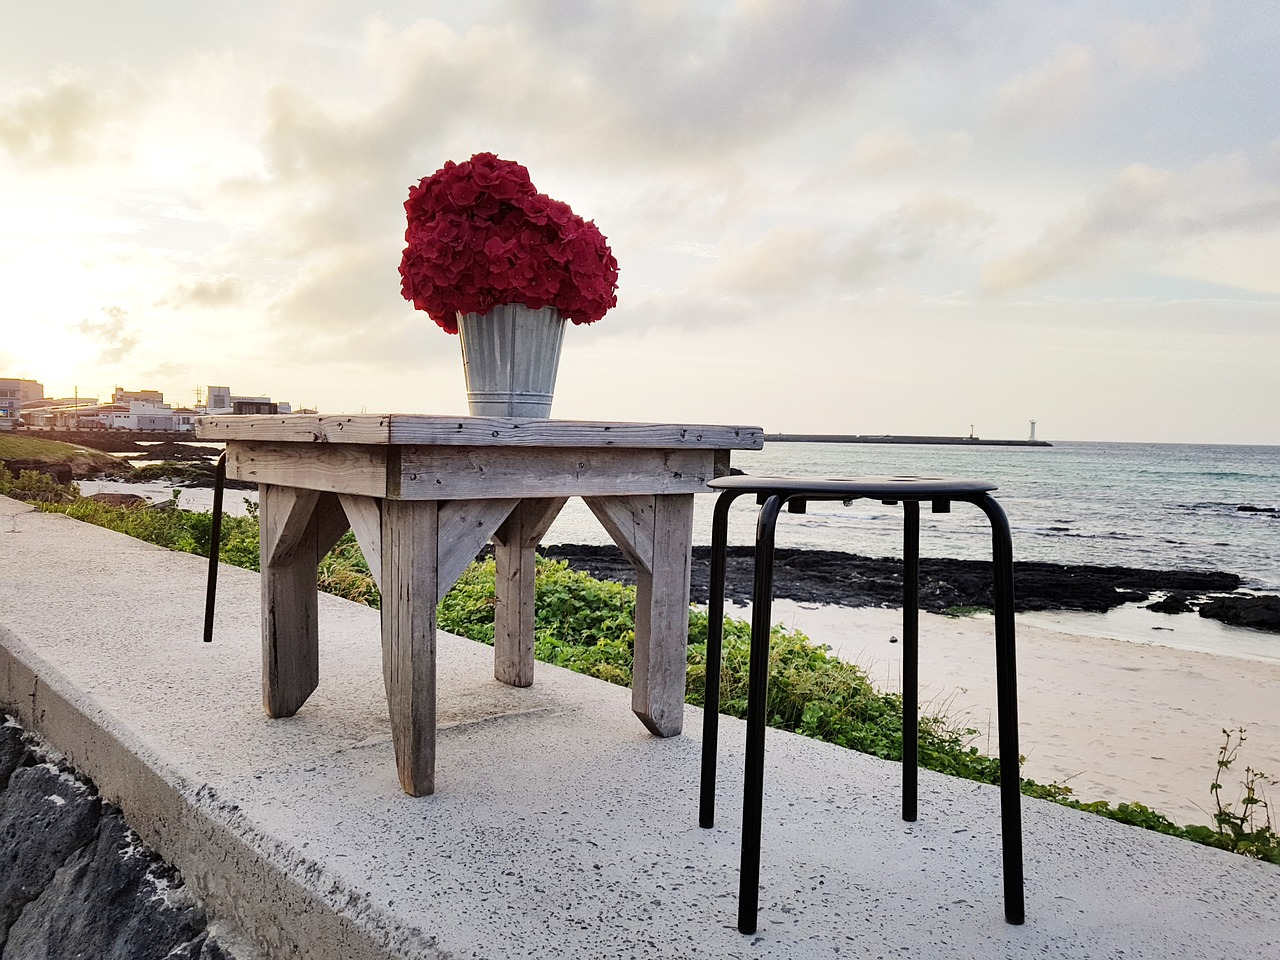 jeju island,sehwa beach,beach,table,flowers,glow,landscape,warm,travel,free pictures, free photos, free images, royalty free, free illustrations, public domain